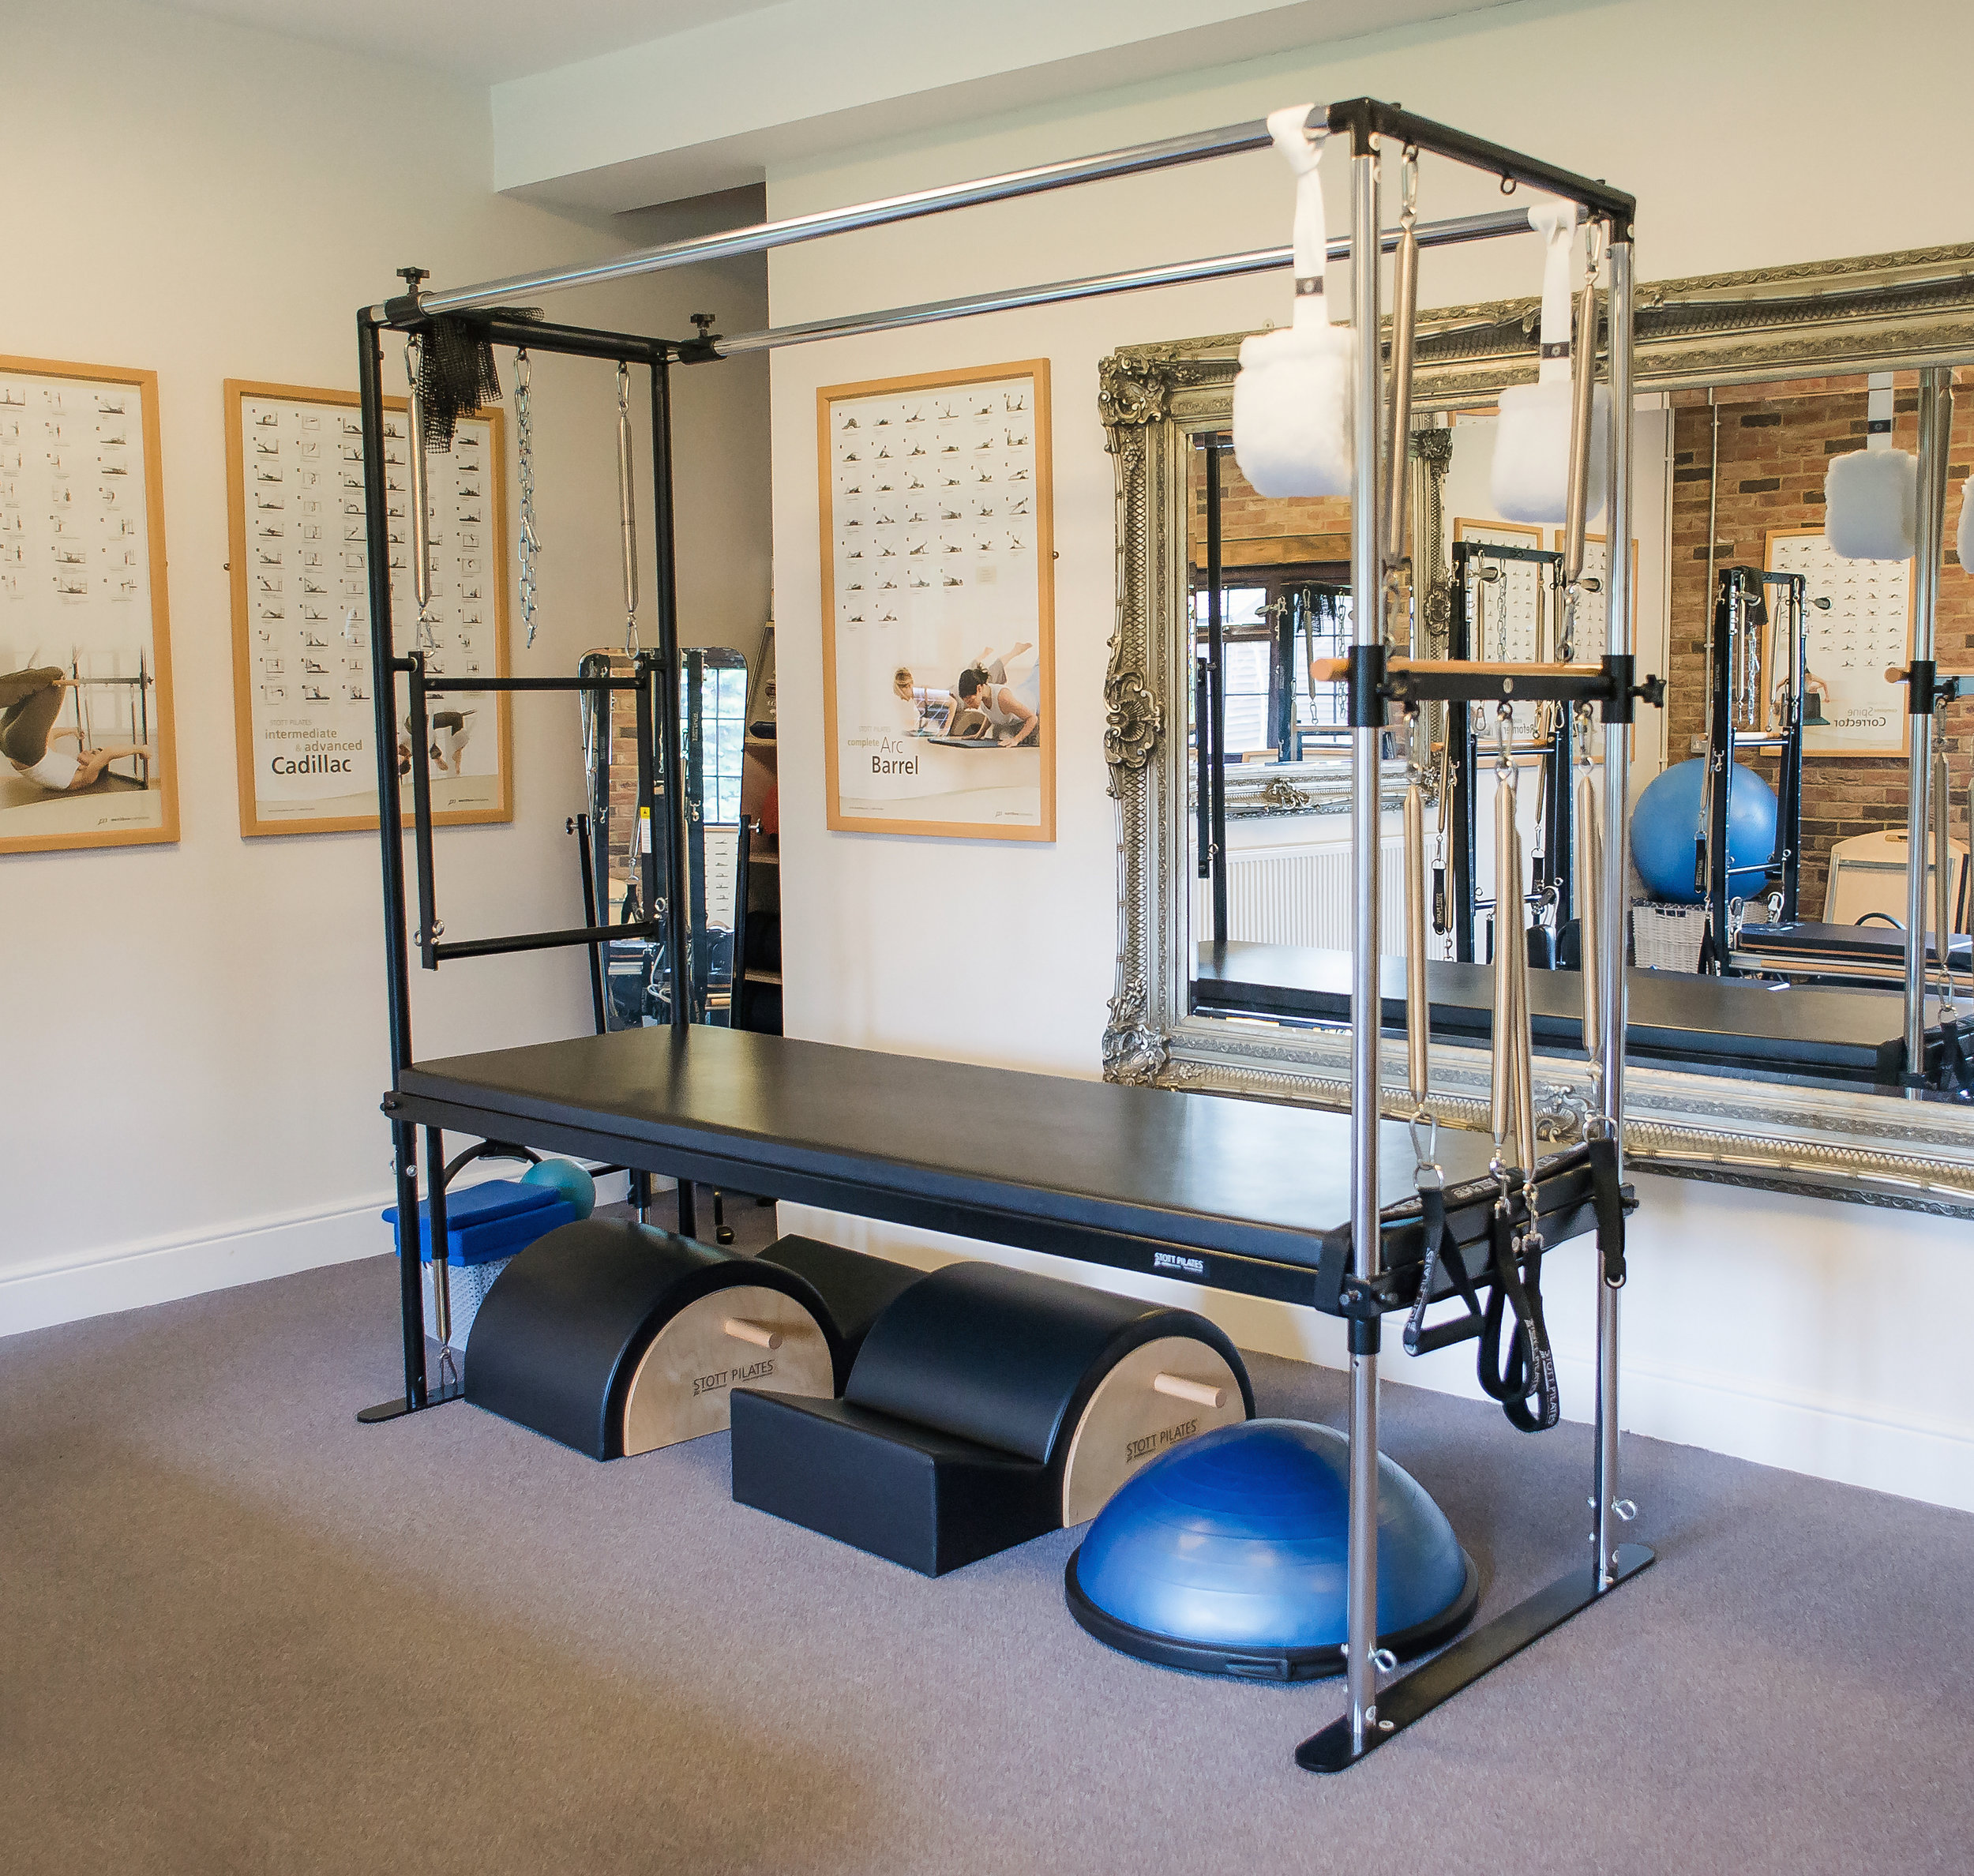 """Cadillac - No full service Pilates studio is complete without a Cadillac/Trapeze Table. It closely represents a bed with a frame, featuring a Roll-Down Bar, Push-Thru Bar, Trapeze, Leg and Arm Springs which are used to support and challenge. Joseph Pilates made all his creations in the basement of his building. When he brought it up into the studio, one of his clients saw the table and said """"Hey Joe, is that your new Cadillac?"""" and the name stuck. The Cadillac offers a extensive range of exercises for everyone from post-rehab clients to athletes, challenging the body in different plans of motion."""